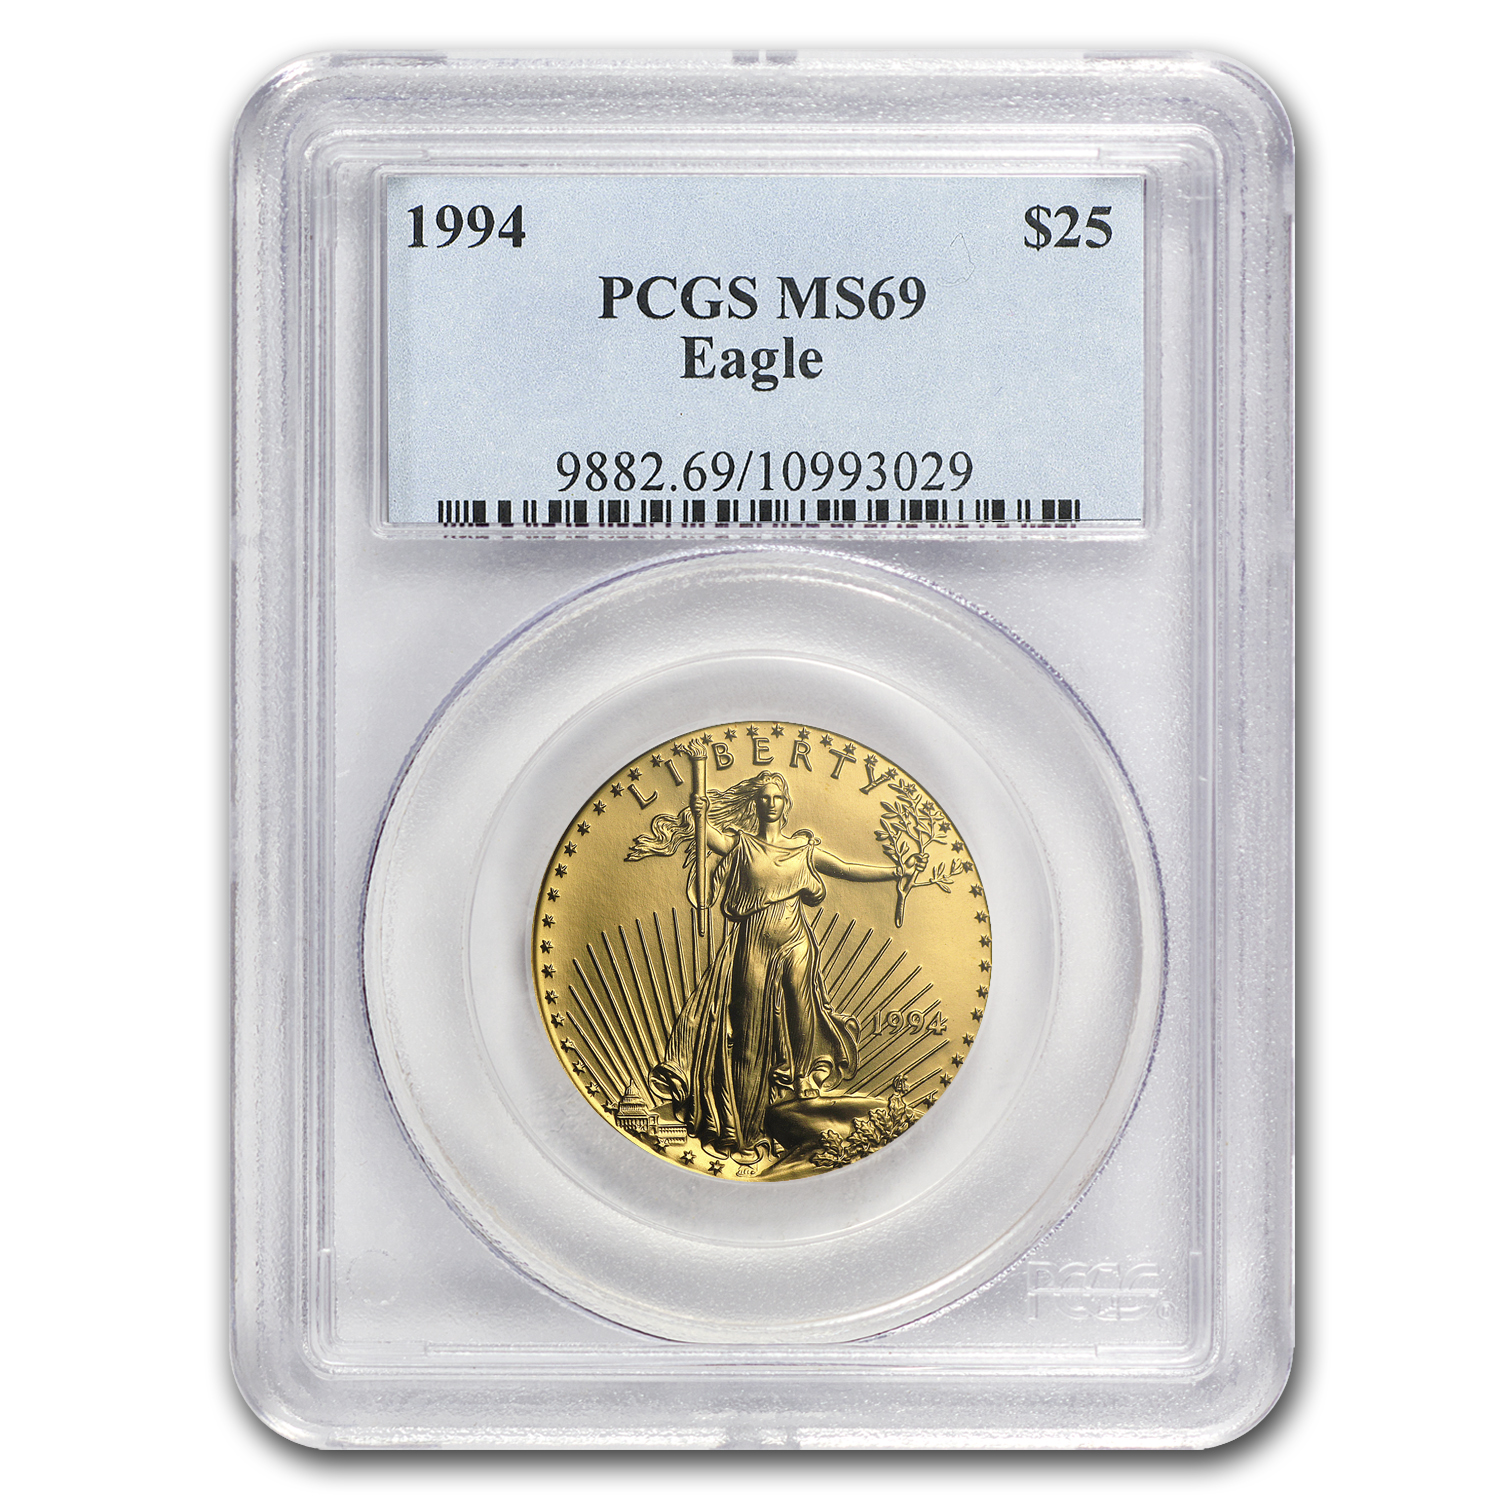 1994 1/2 oz Gold American Eagle MS-69 PCGS